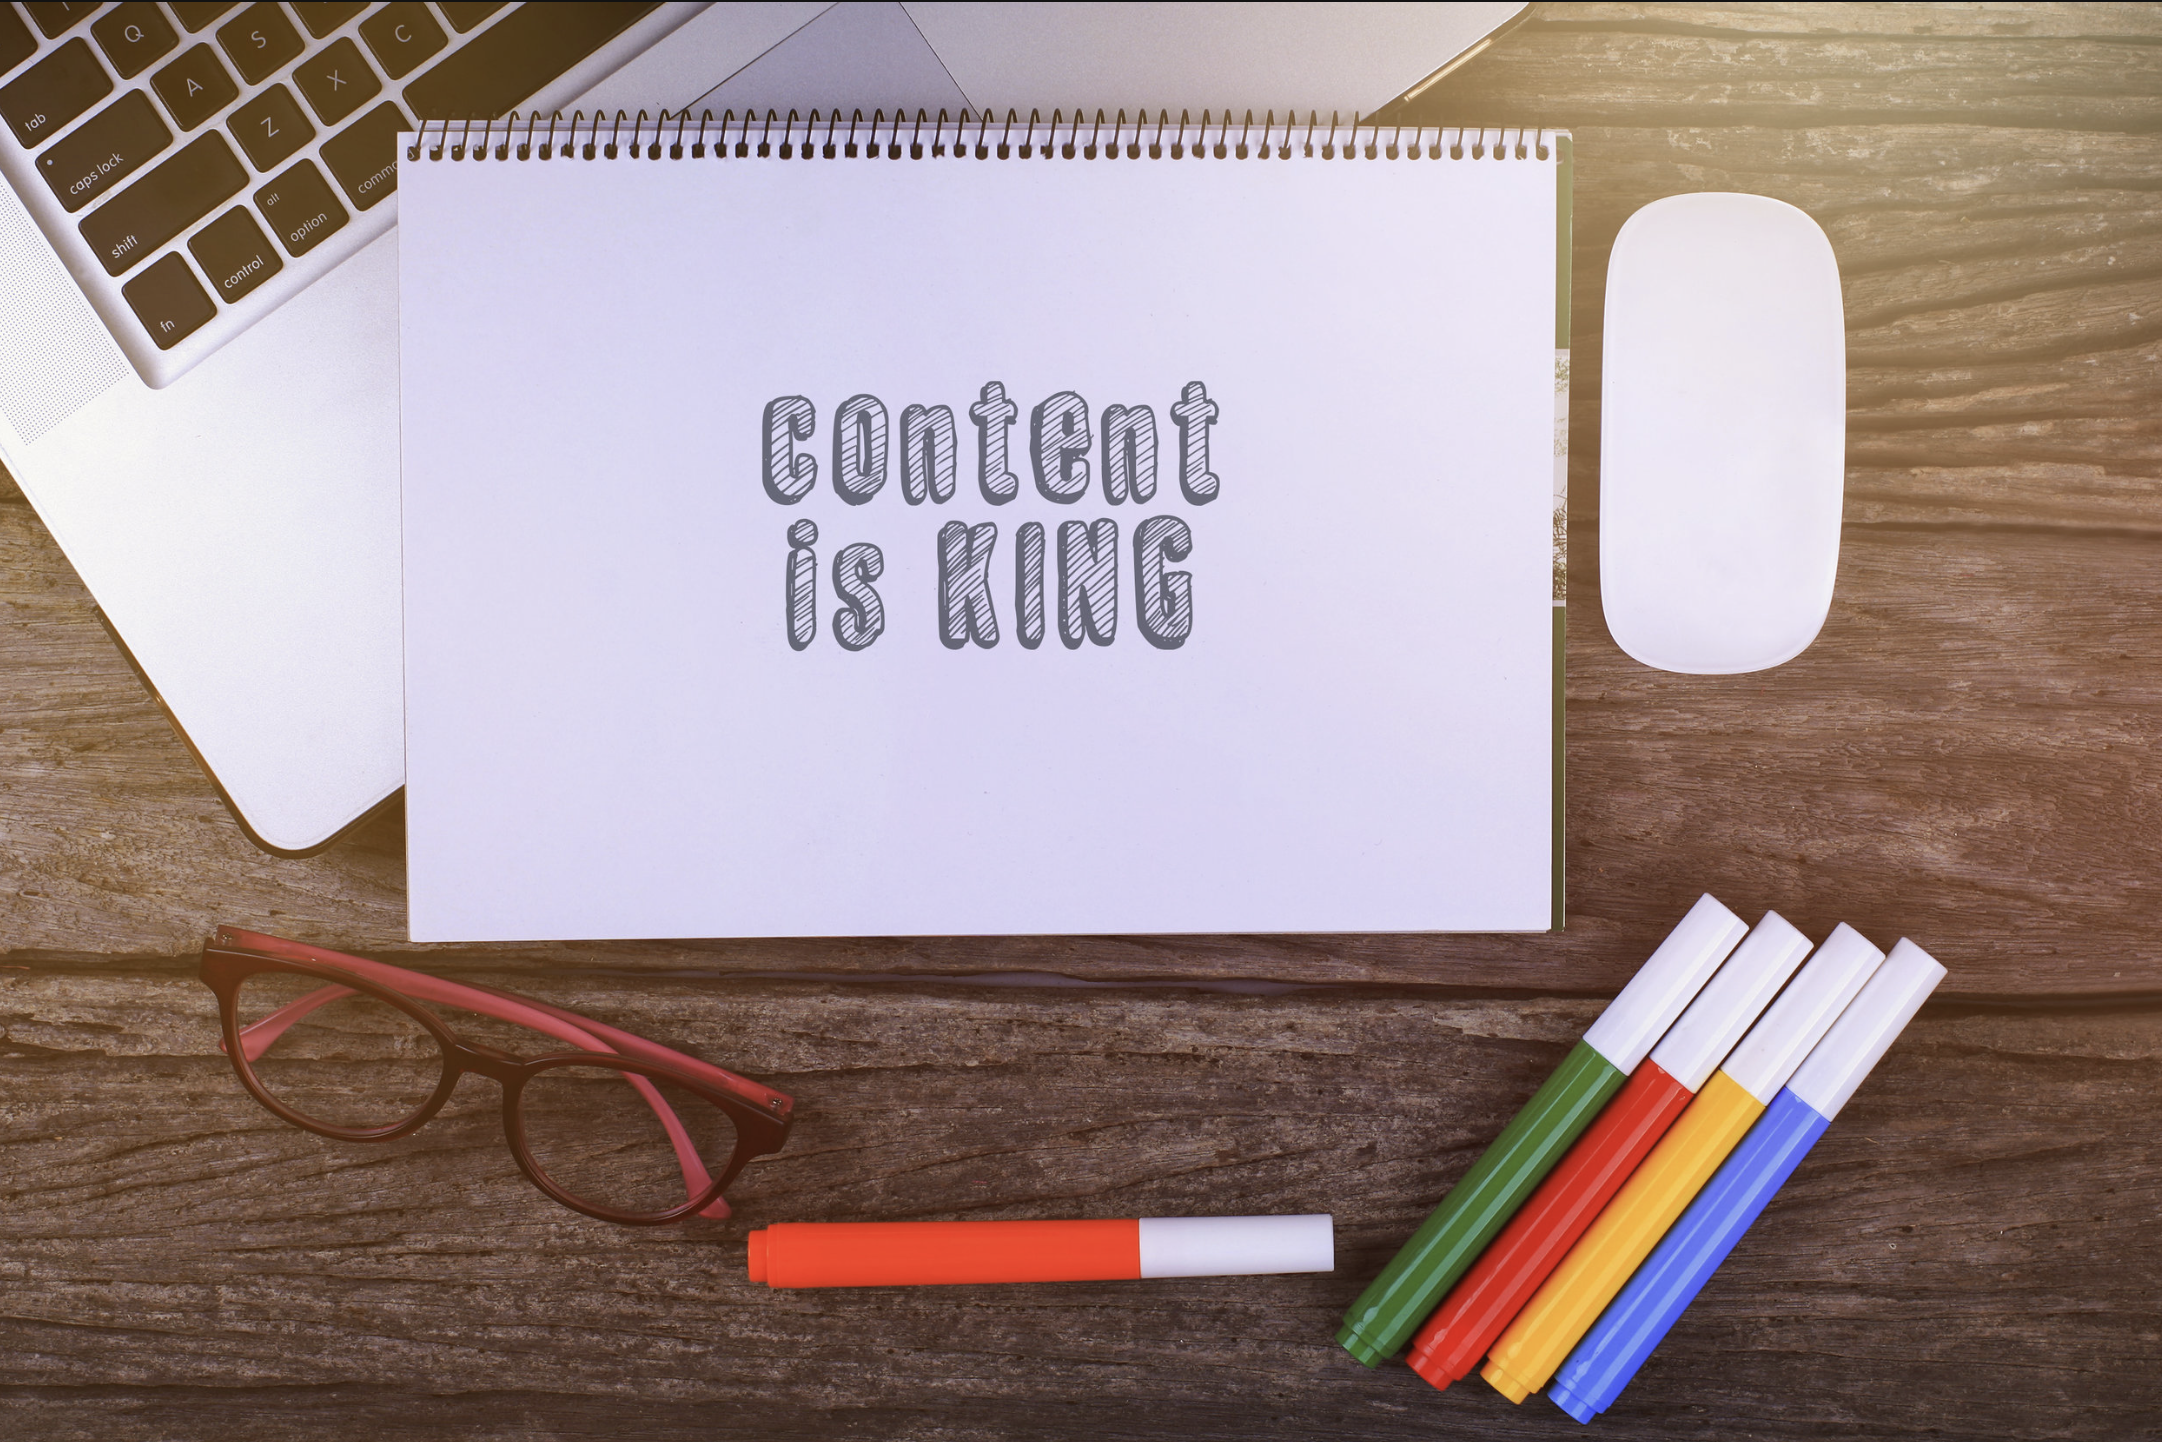 Content Creation - A content strategy helps businesses develop content topics and themes and organizes their publishing schedule.